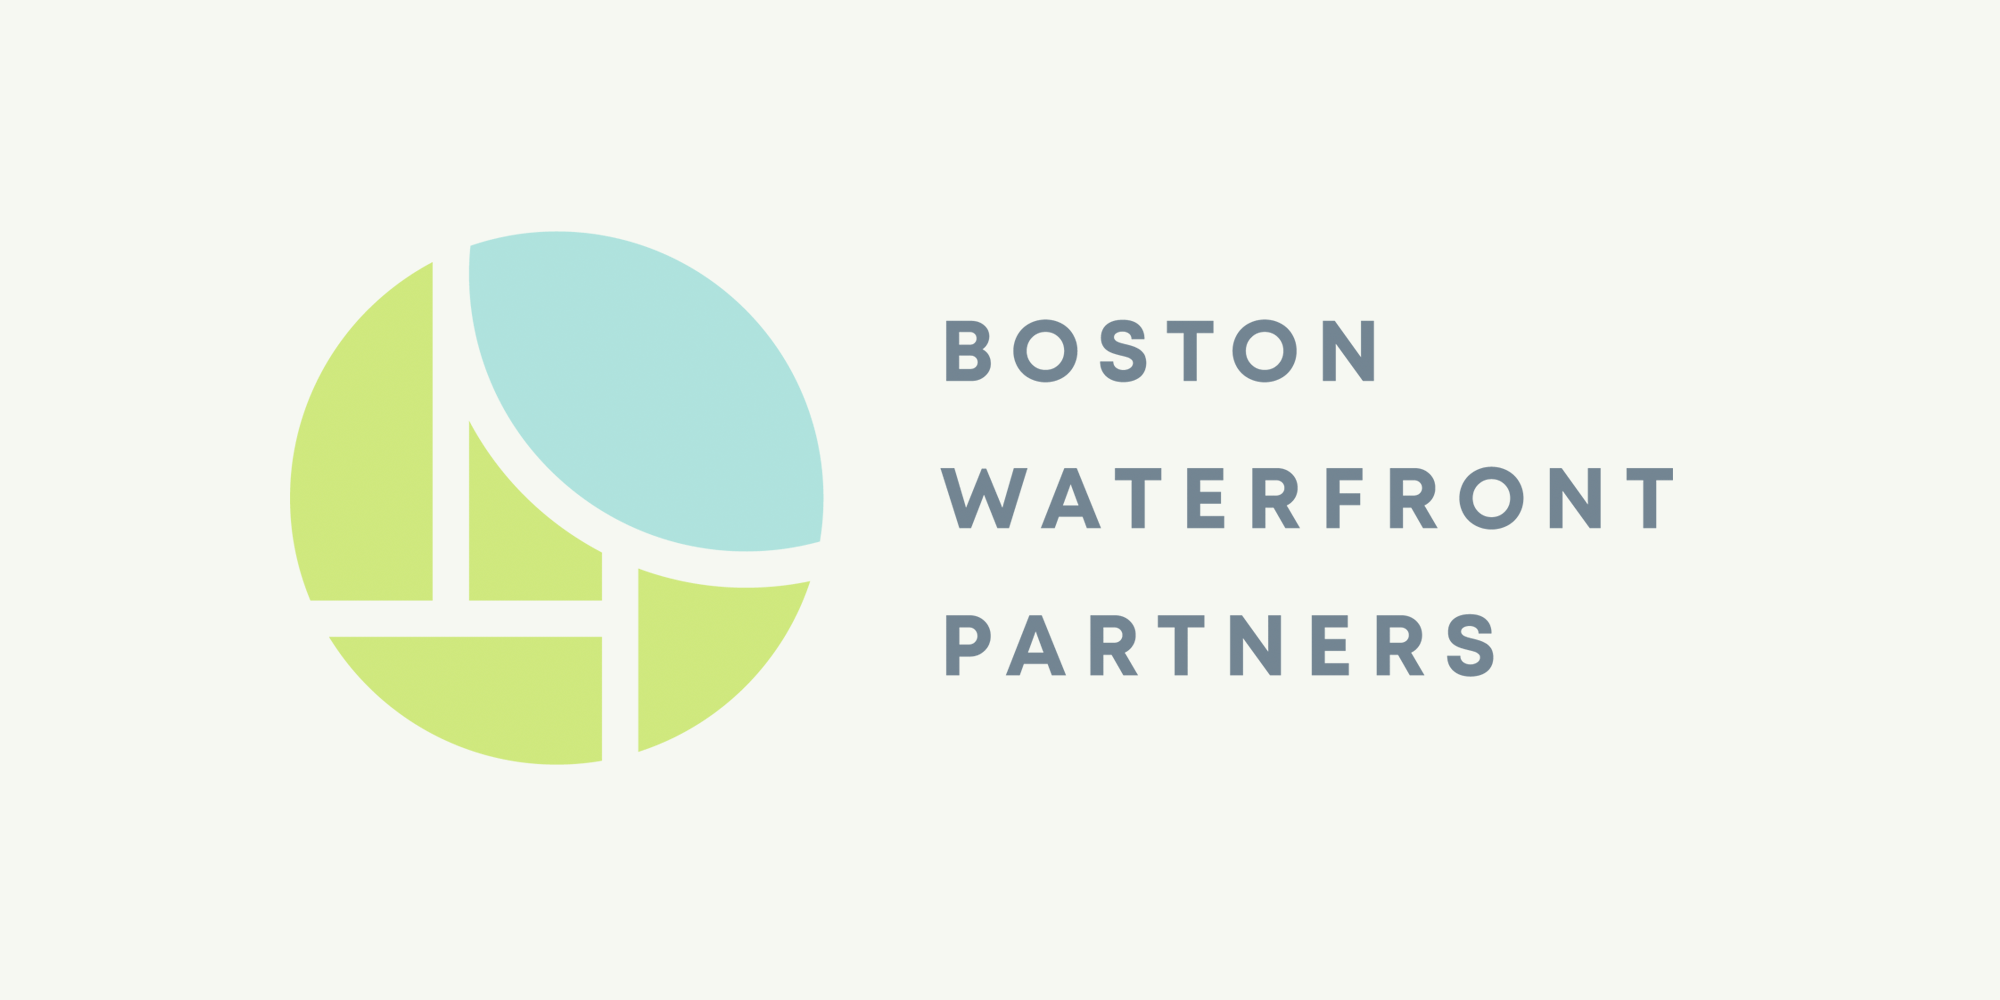 Boston Waterfront Partners